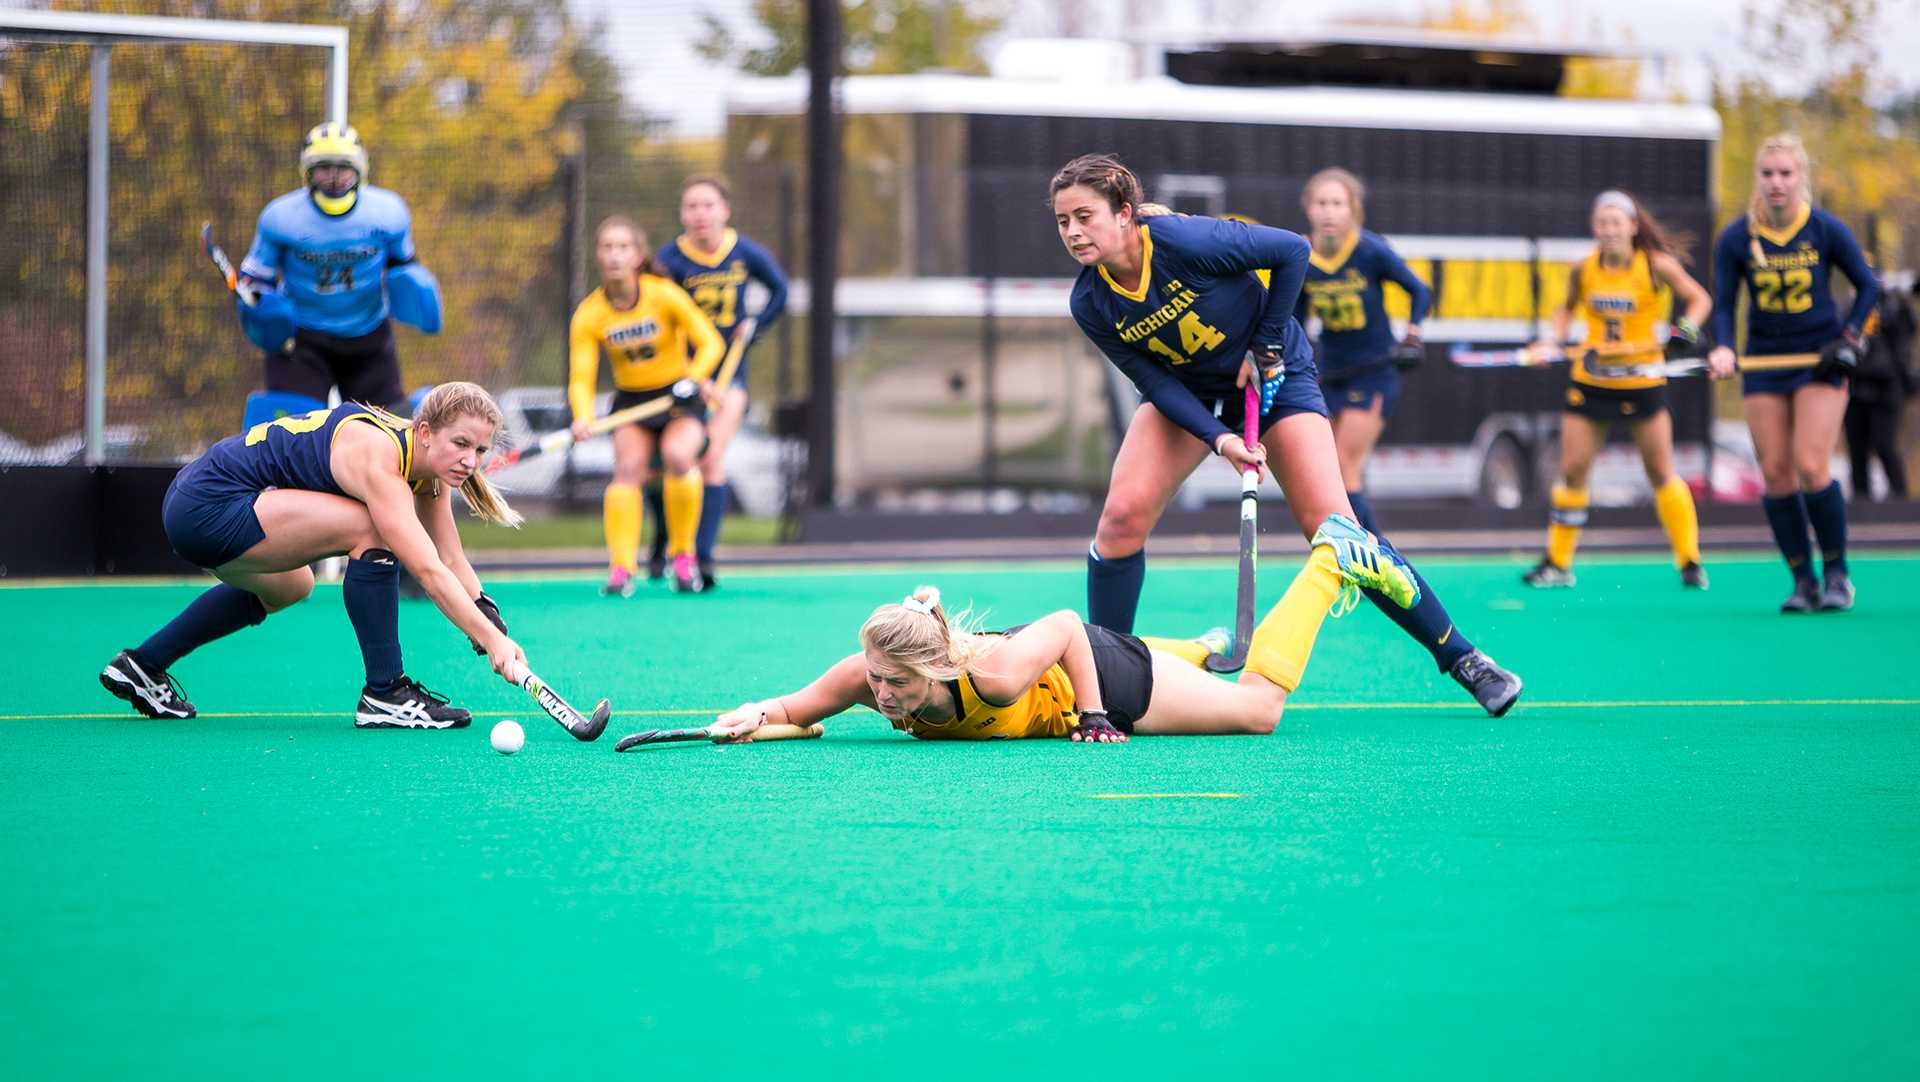 Iowa field hockey player Ellie Holley crashes to the ground during a match against the Michigan Wolverines on Sunday, Oct. 15, 2017.  The Wolverines defeated the Hawkeyes 3-2. (David Harmantas/The Daily Iowan)